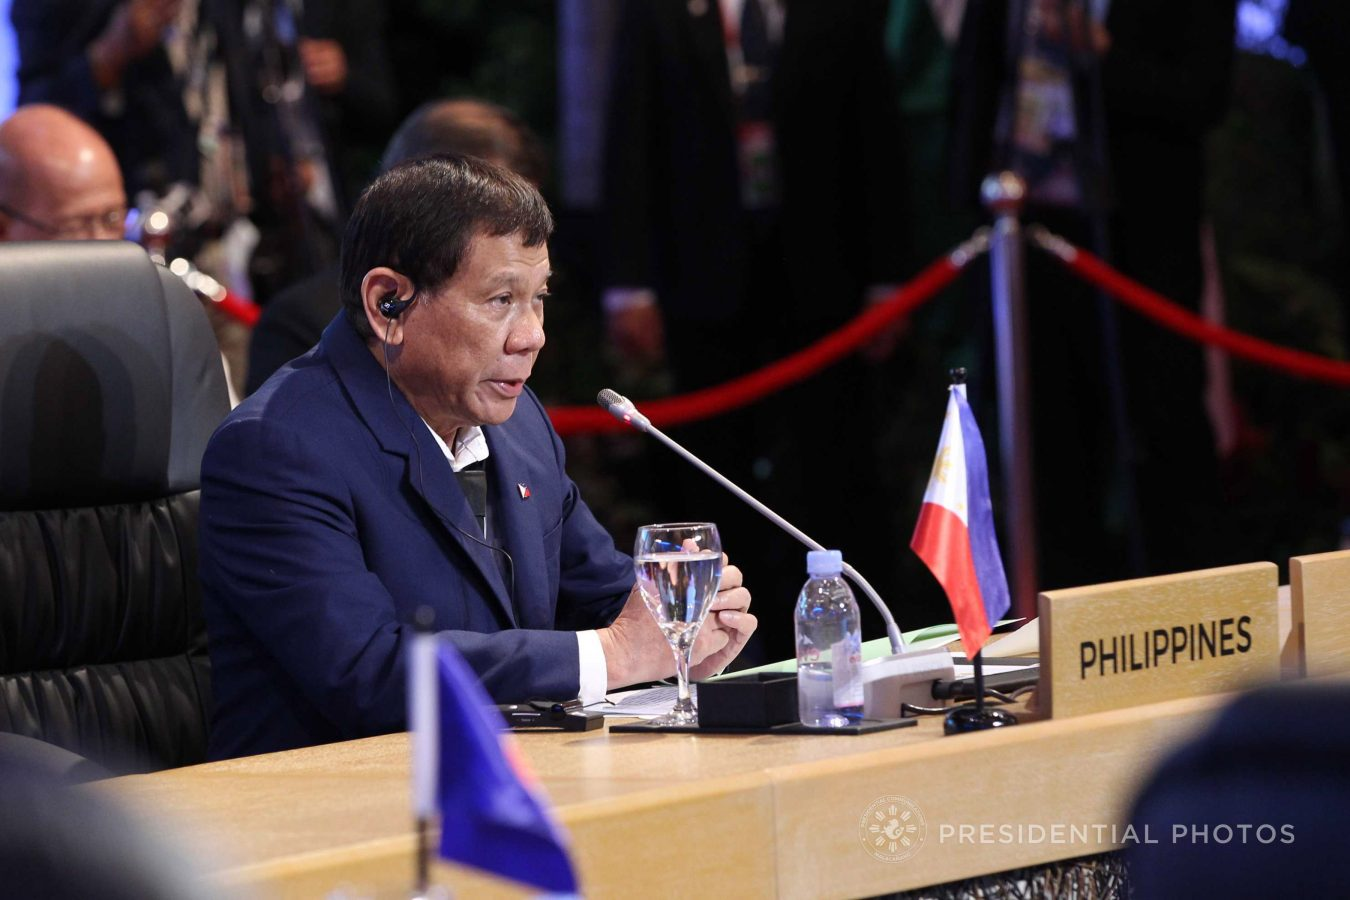 President Rodrigo Duterte reported a productive conclusion of the 31st ASEAN Summit and Related Summits on Tuesday, November 14, announcing landmark outcomes of the meetings during the Philippines' hosting. (PCOO PHOTO)